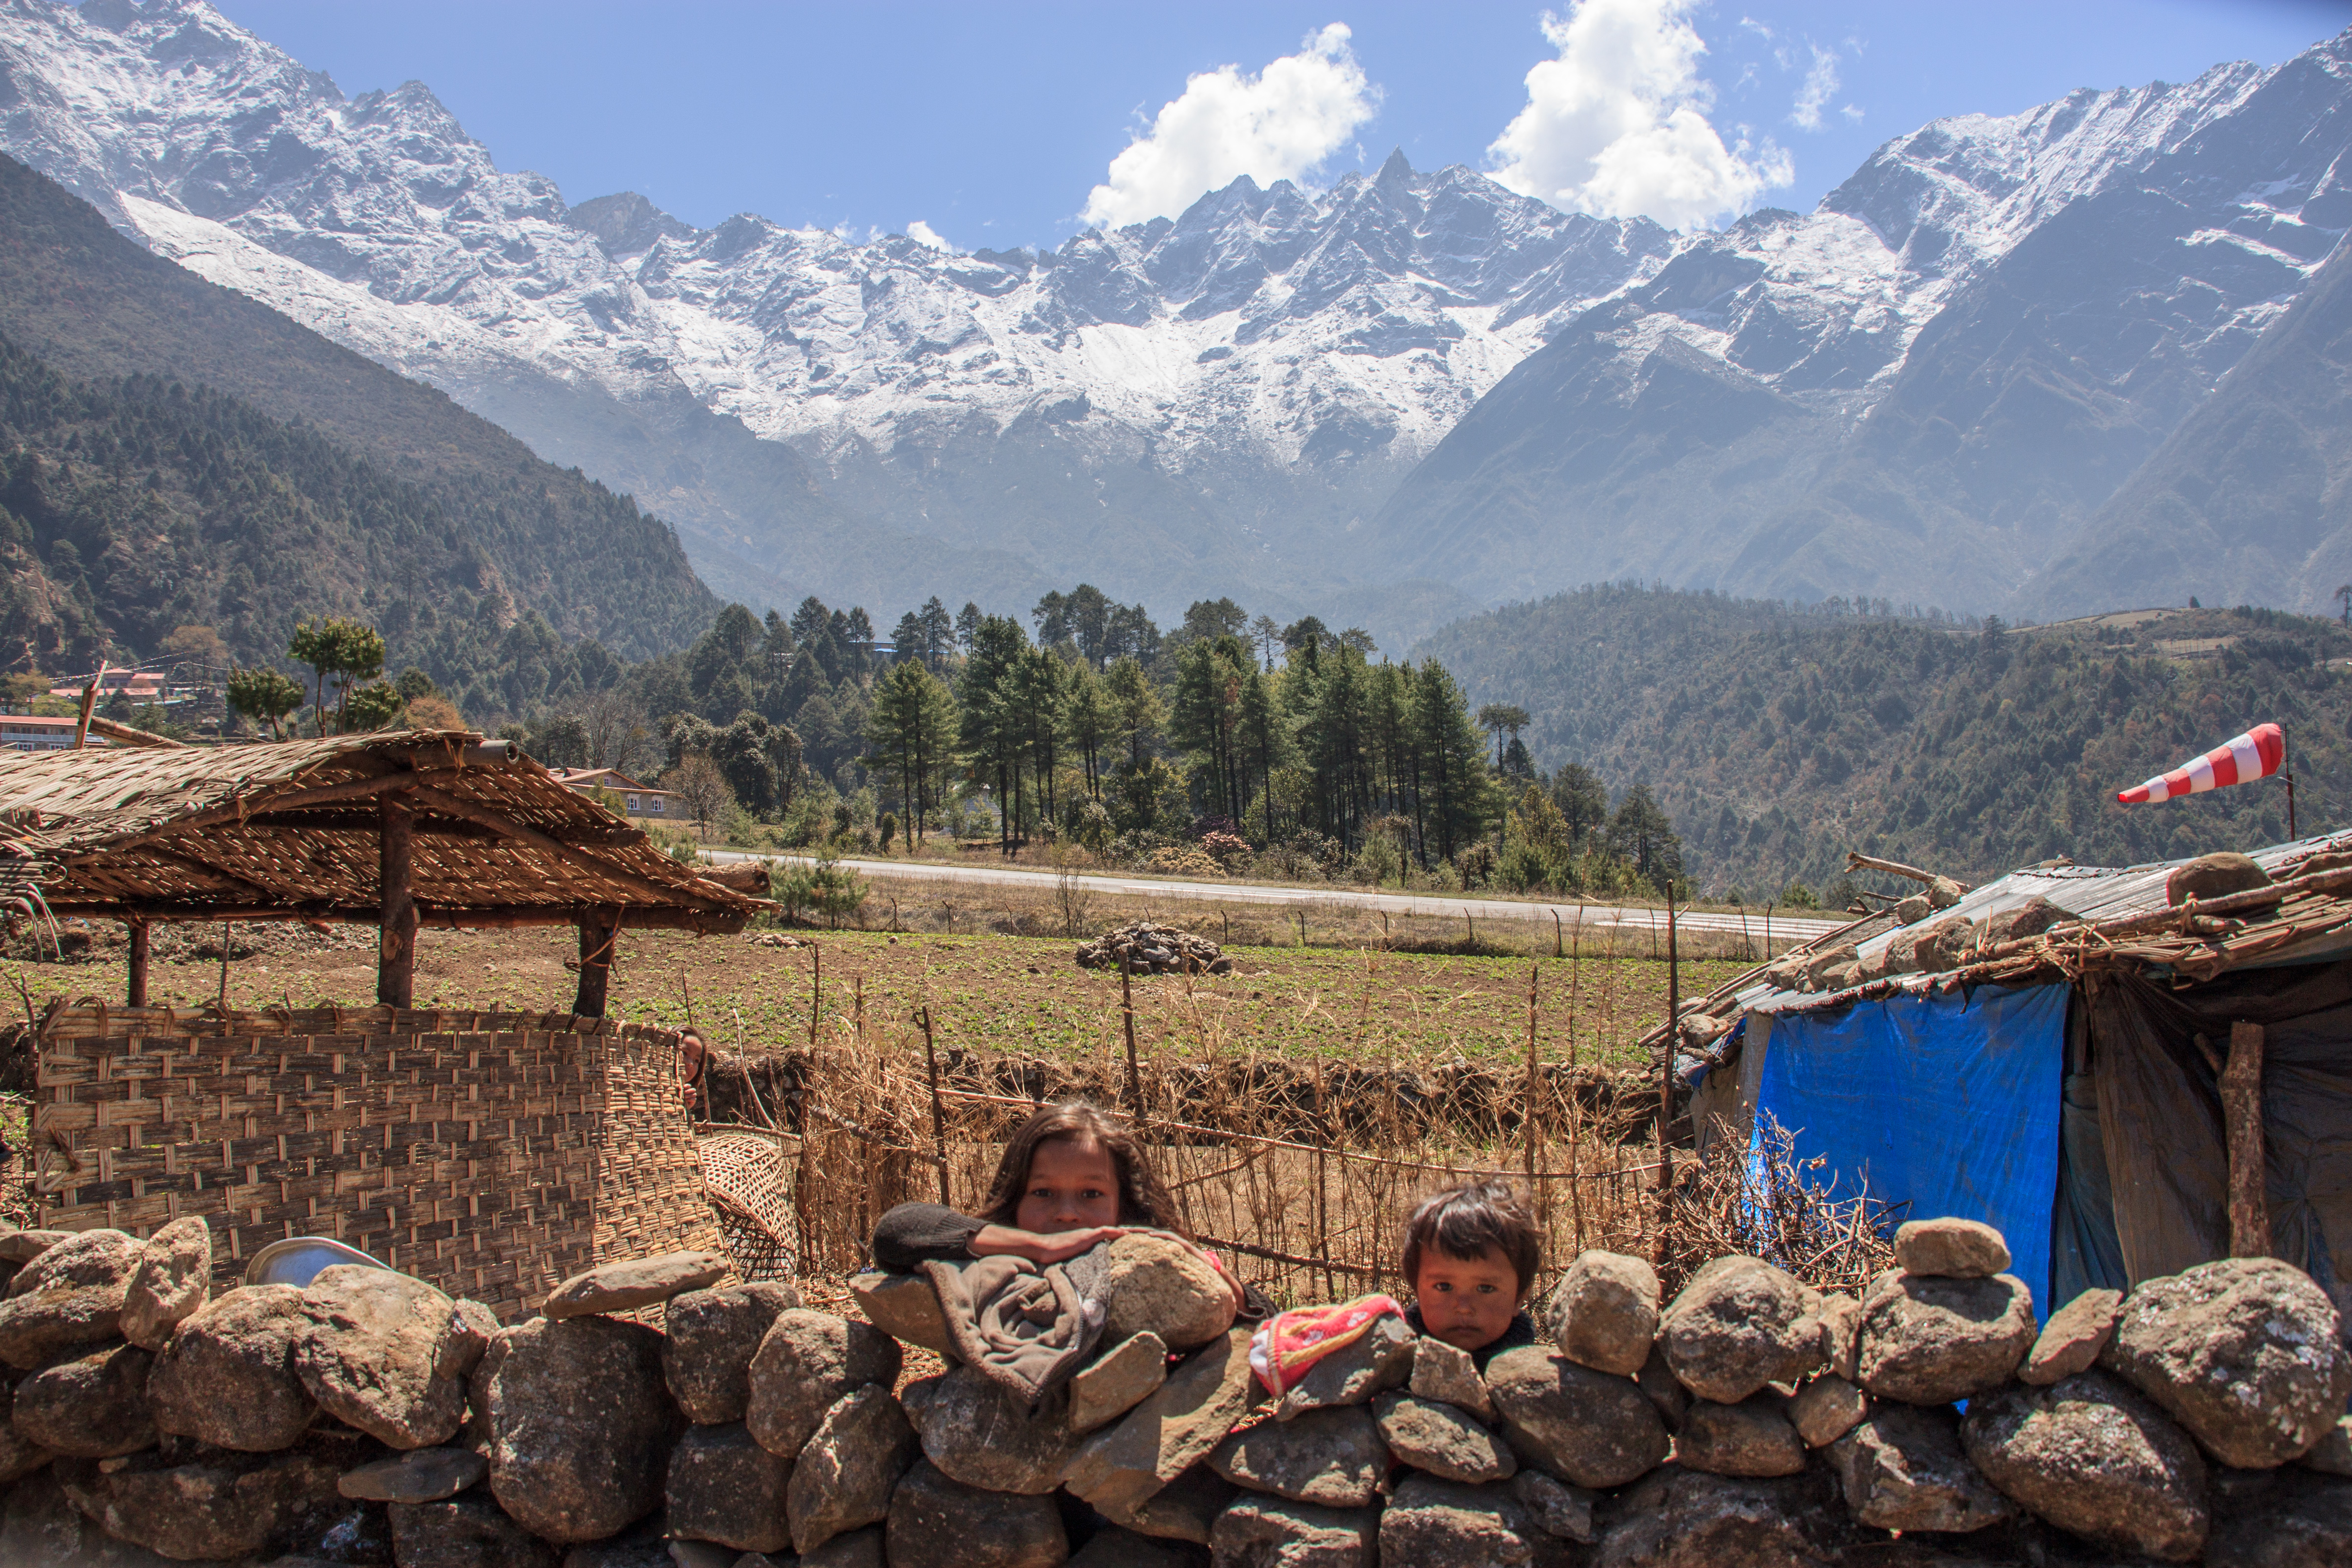 Children and the runway at Lukla with the Zatrwa La (pass) in the background.